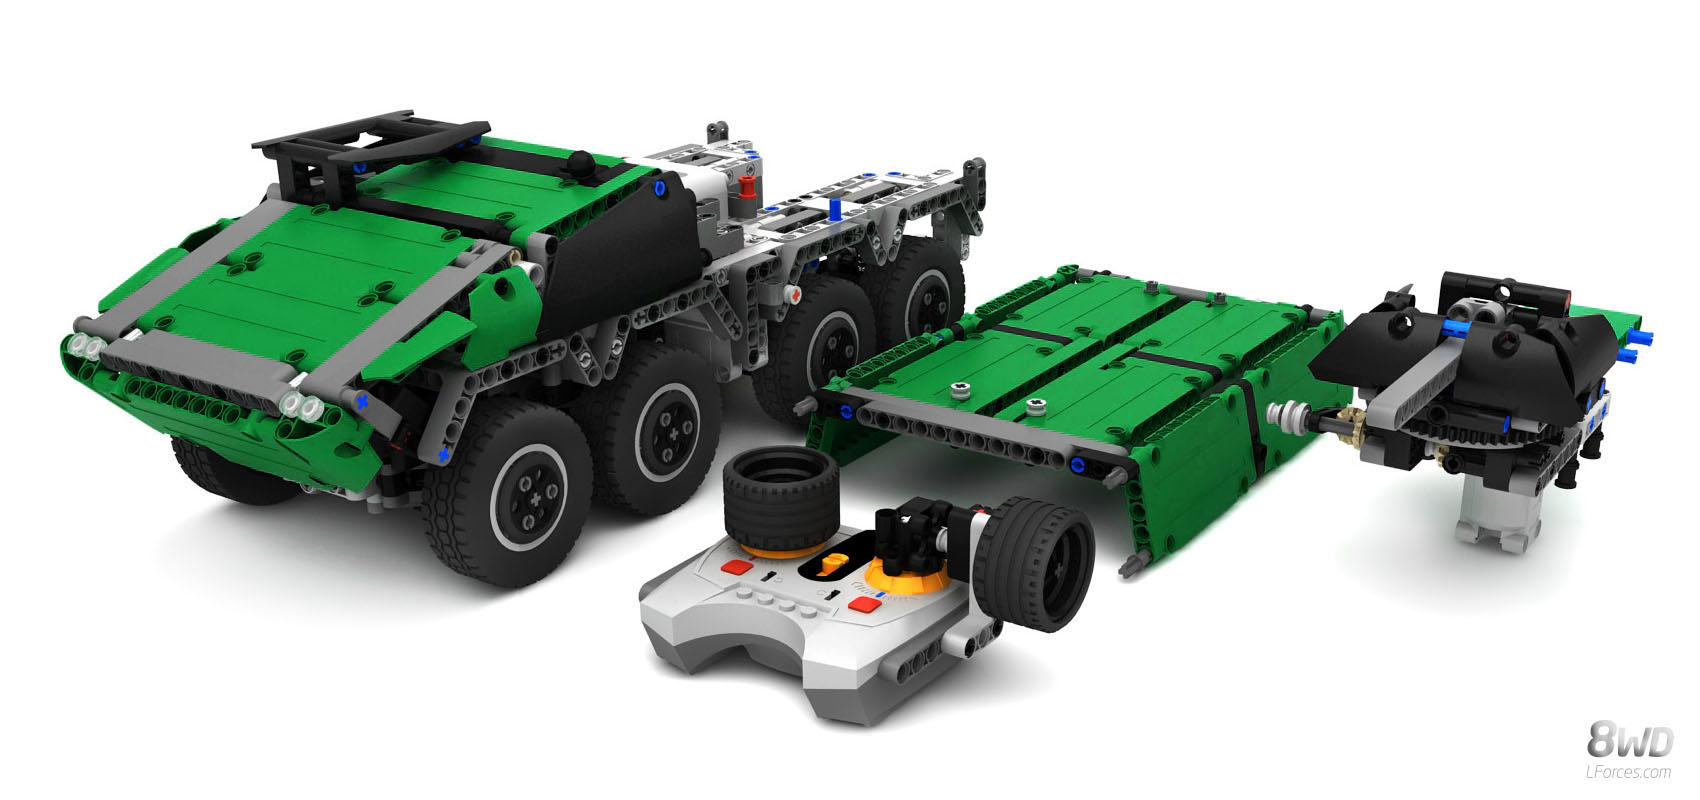 cars remote control with Boxer on Bmw 320 Cd M Sport 2003 03 Blue together with 976883 Carrera Ford F 150 Raptor Rc Truck together with Lego Technic Tesla Model S 2016 further  further 255851 2015 Ford F250 Crew Cab Lariat Fx4 440hp Diesel Liftedwheelstires Pearl White.